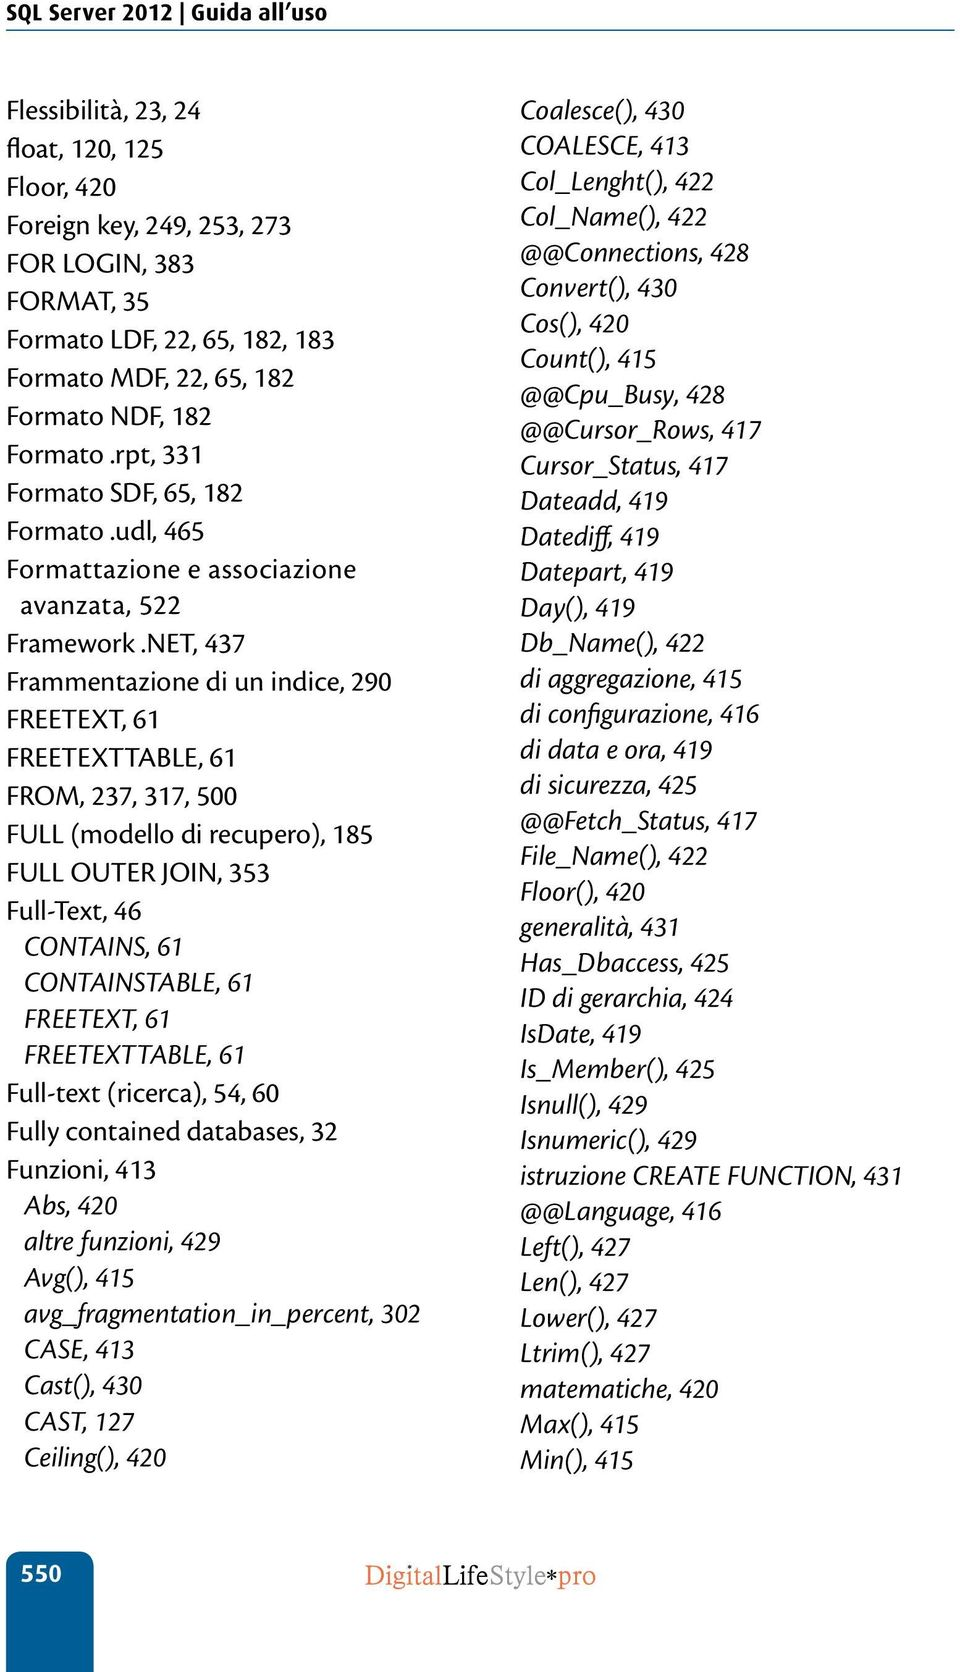 NET, 437 Frammentazione di un indice, 290 FREETEXT, 61 FREETEXTTABLE, 61 FROM, 237, 317, 500 FULL (modello di recupero), 185 FULL OUTER JOIN, 353 Full-Text, 46 CONTAINS, 61 CONTAINSTABLE, 61